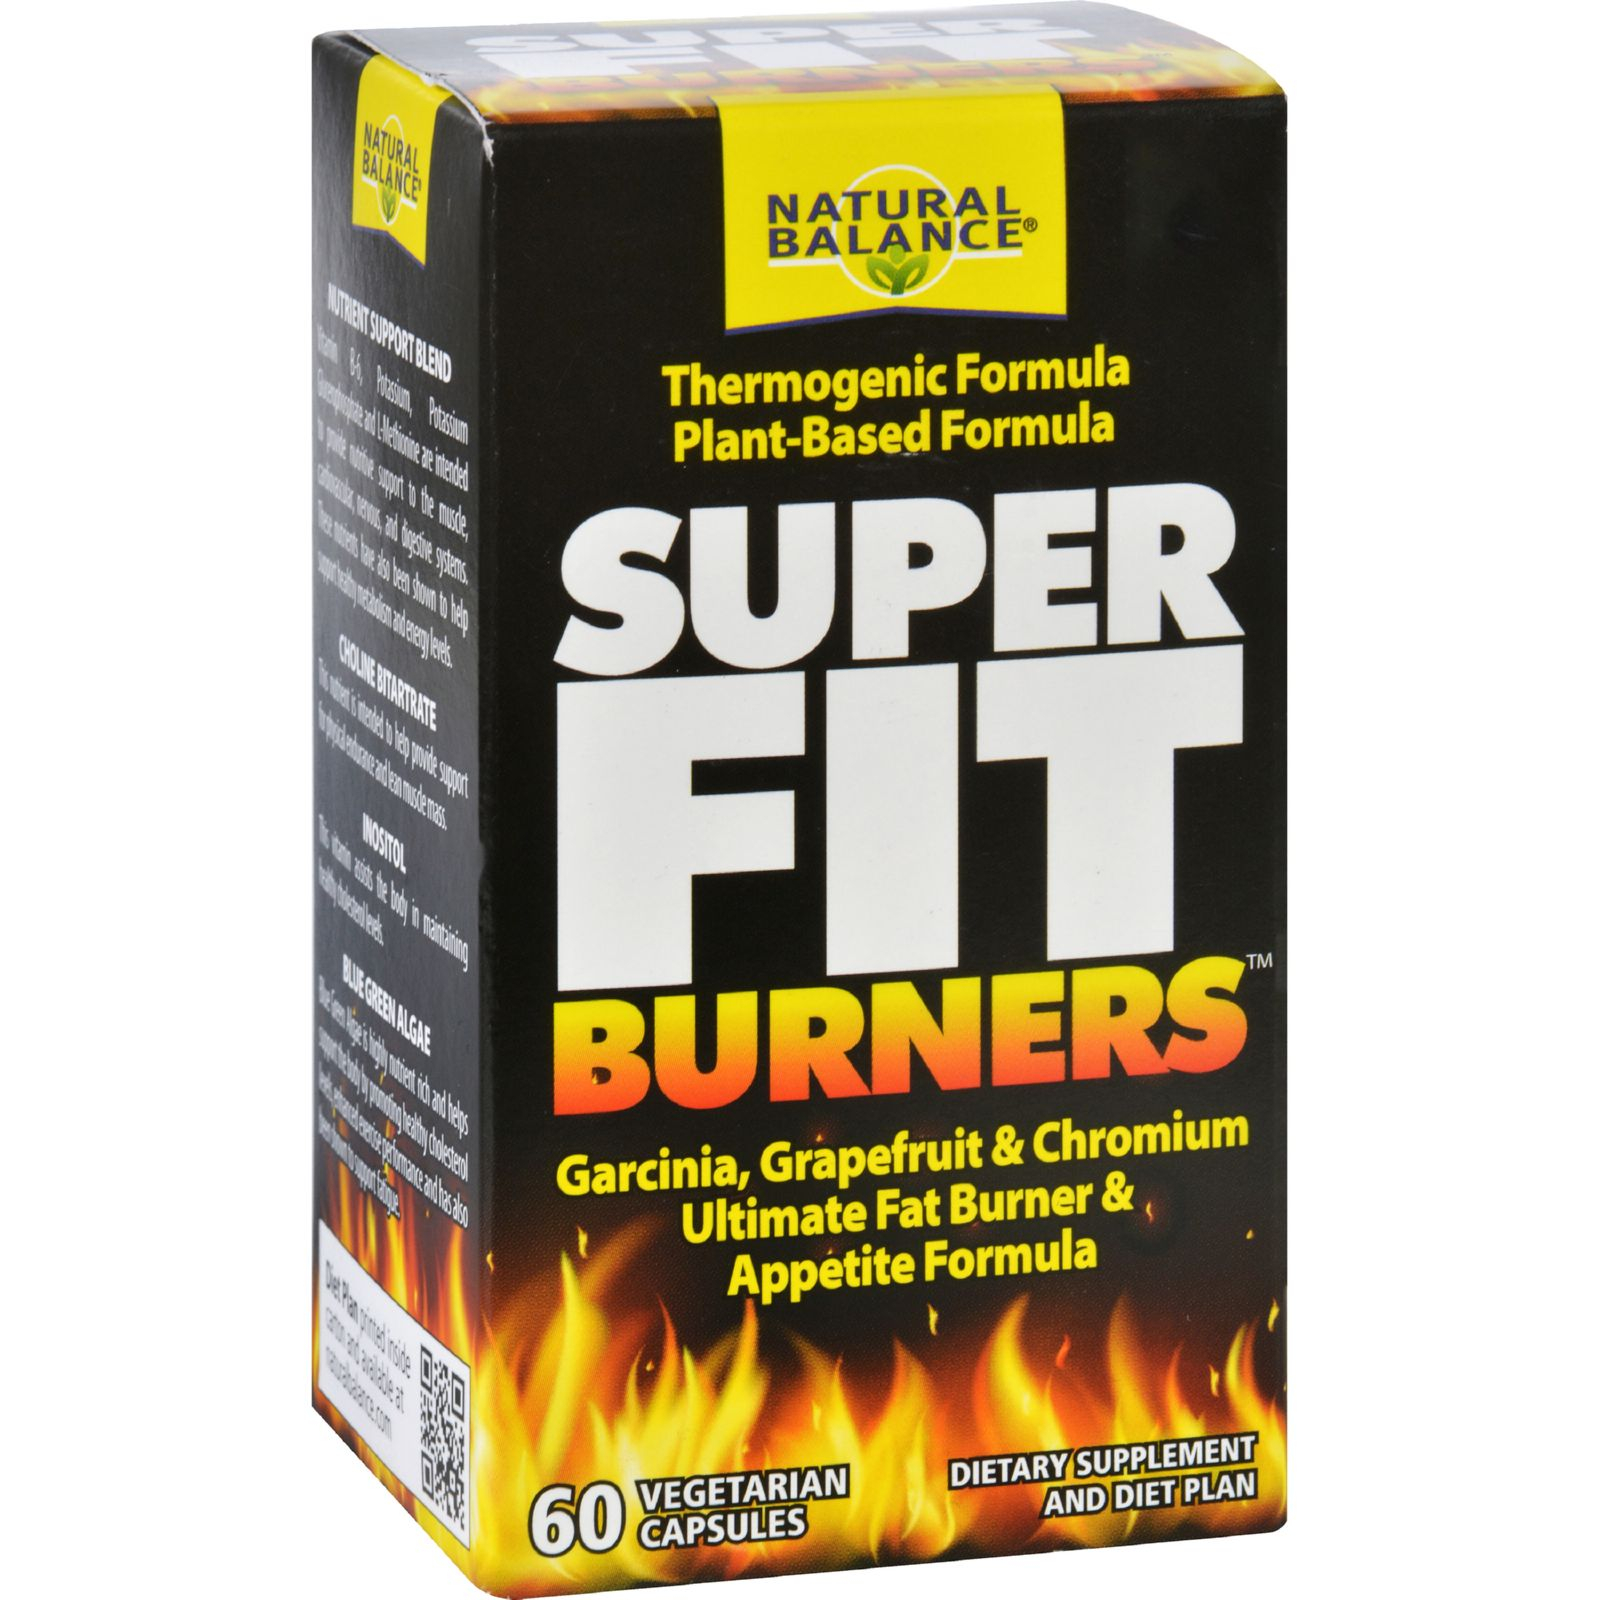 Natural Balance Super Fit Burners  60 Vegetarian Capsules